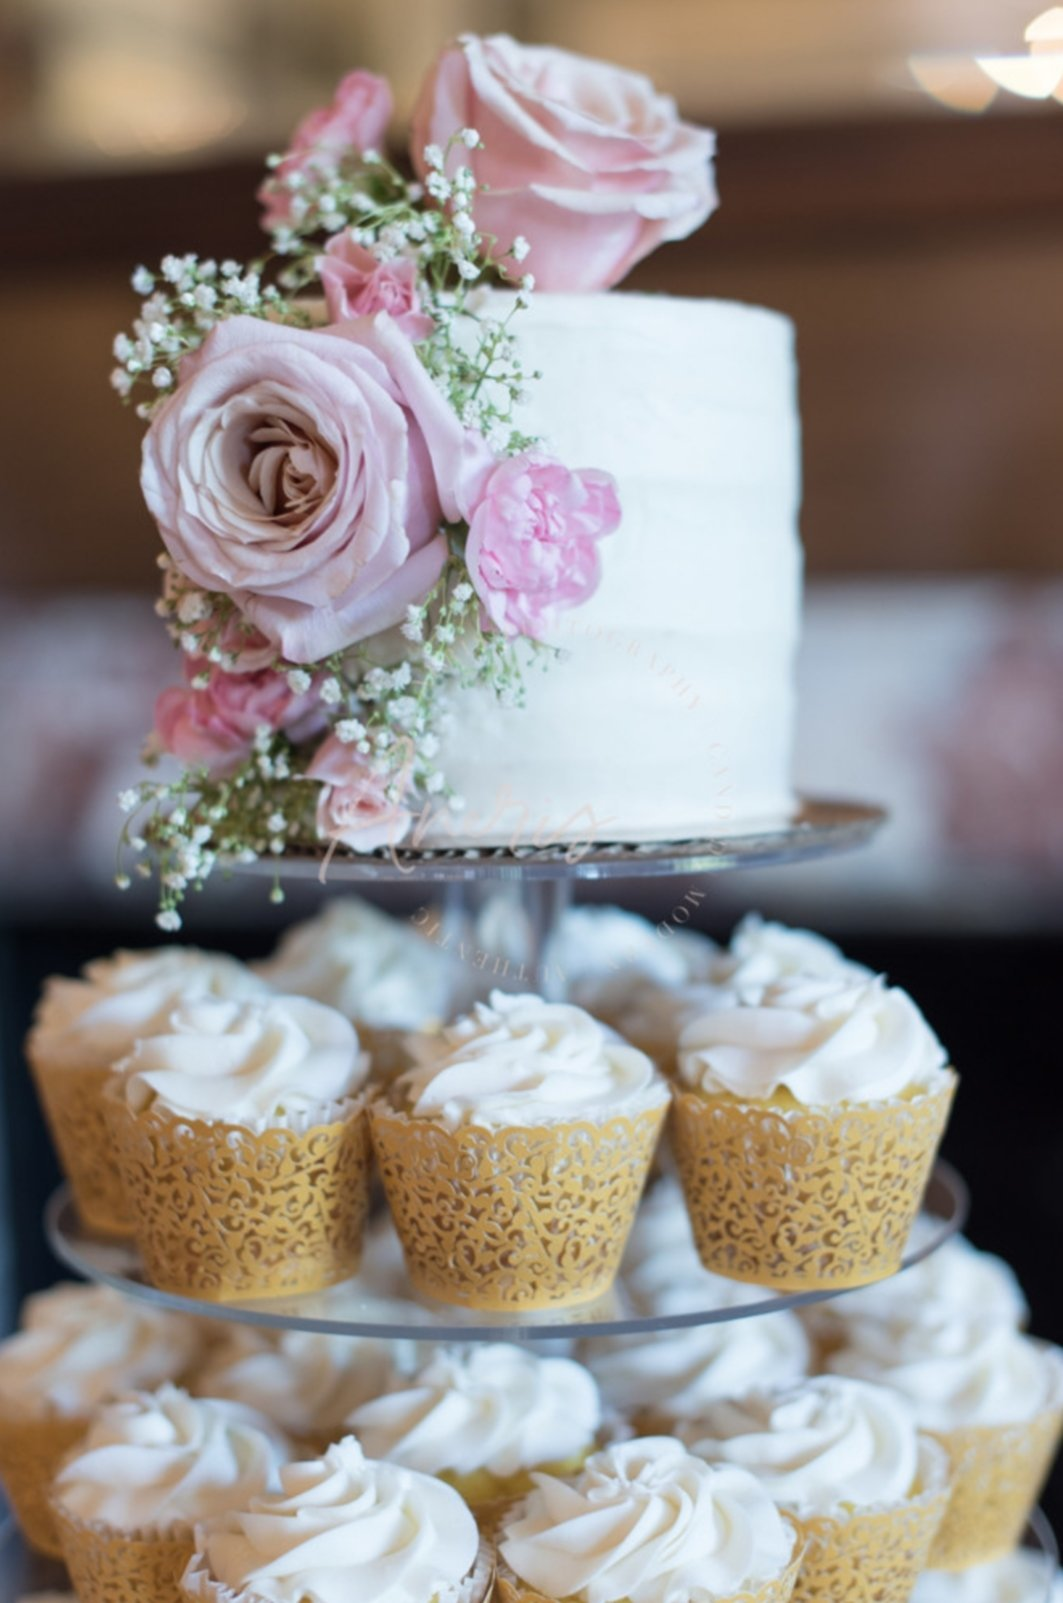 FRANCIS MARION HOTEL. CHARLESTON WEDDING PLANNER. WEDDING CUPCAKES, CAKES, CUPCAKES